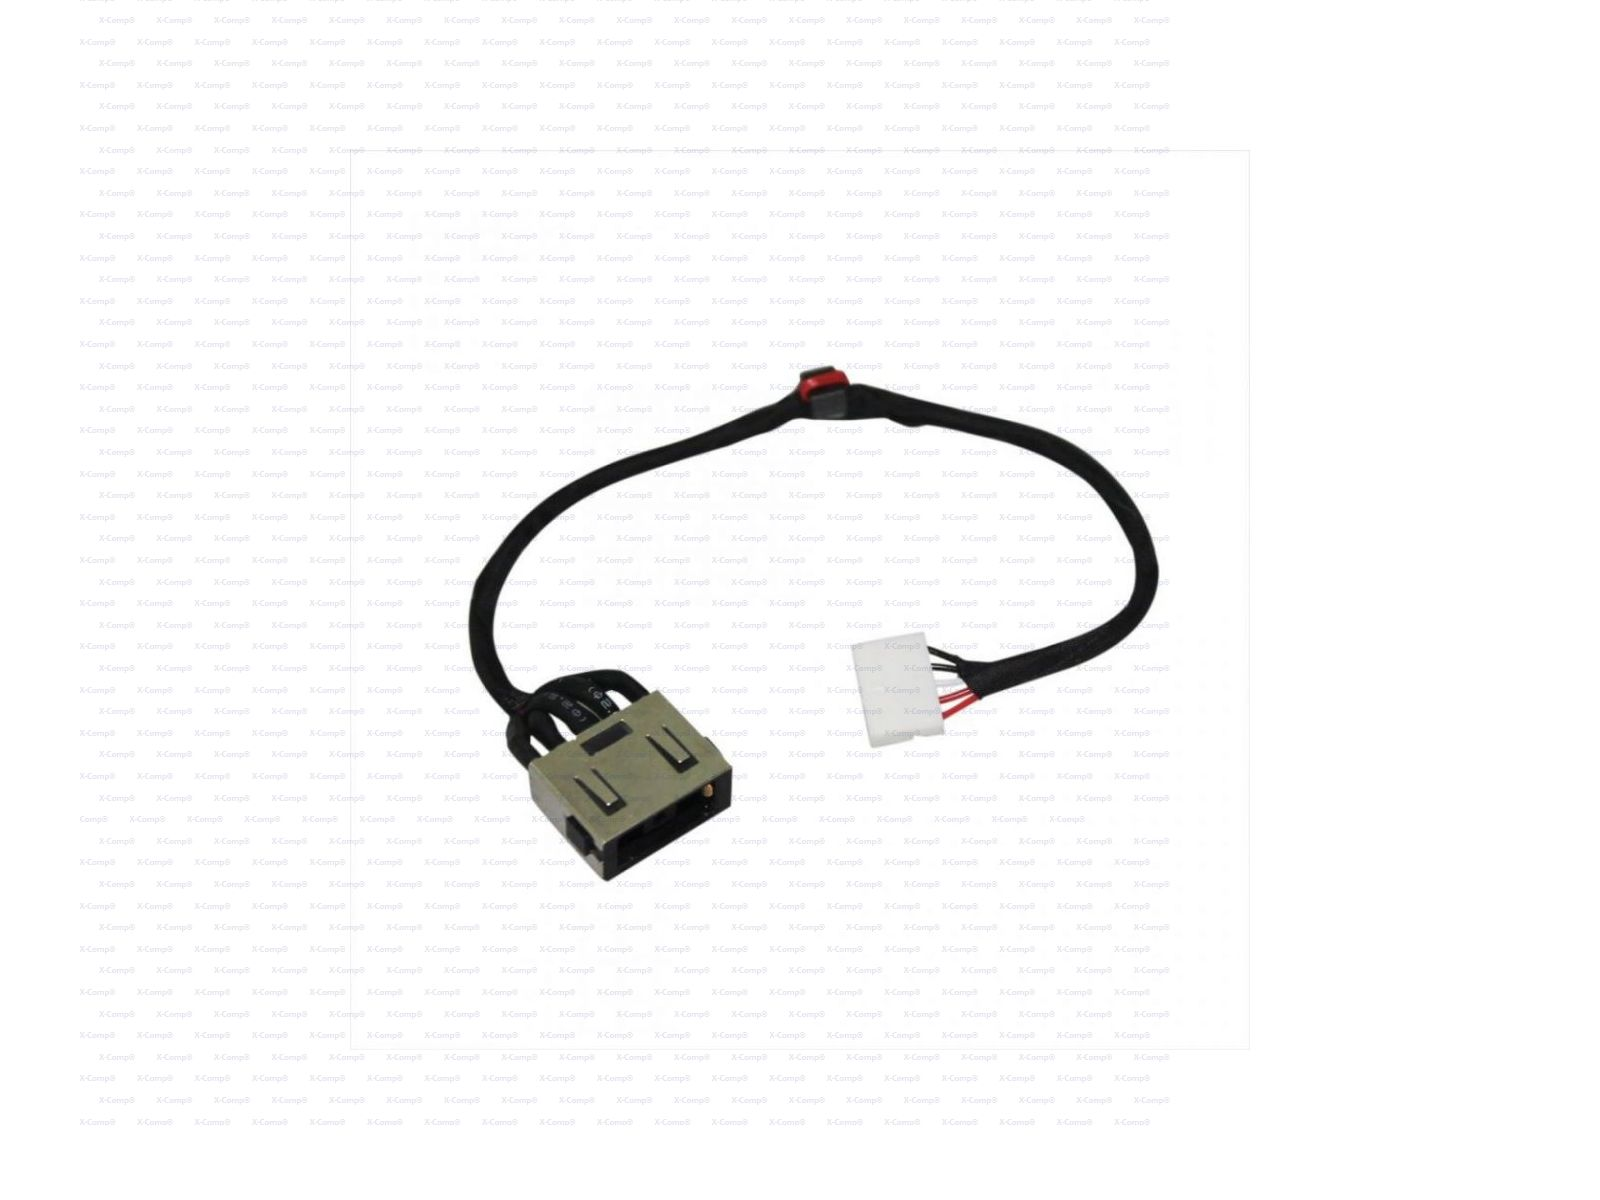 New Laptop Dc Power Jack With Cable For Lenovo E40-70 B40-80 N40-70 E40-80 Dc30100r100t Computer & Office